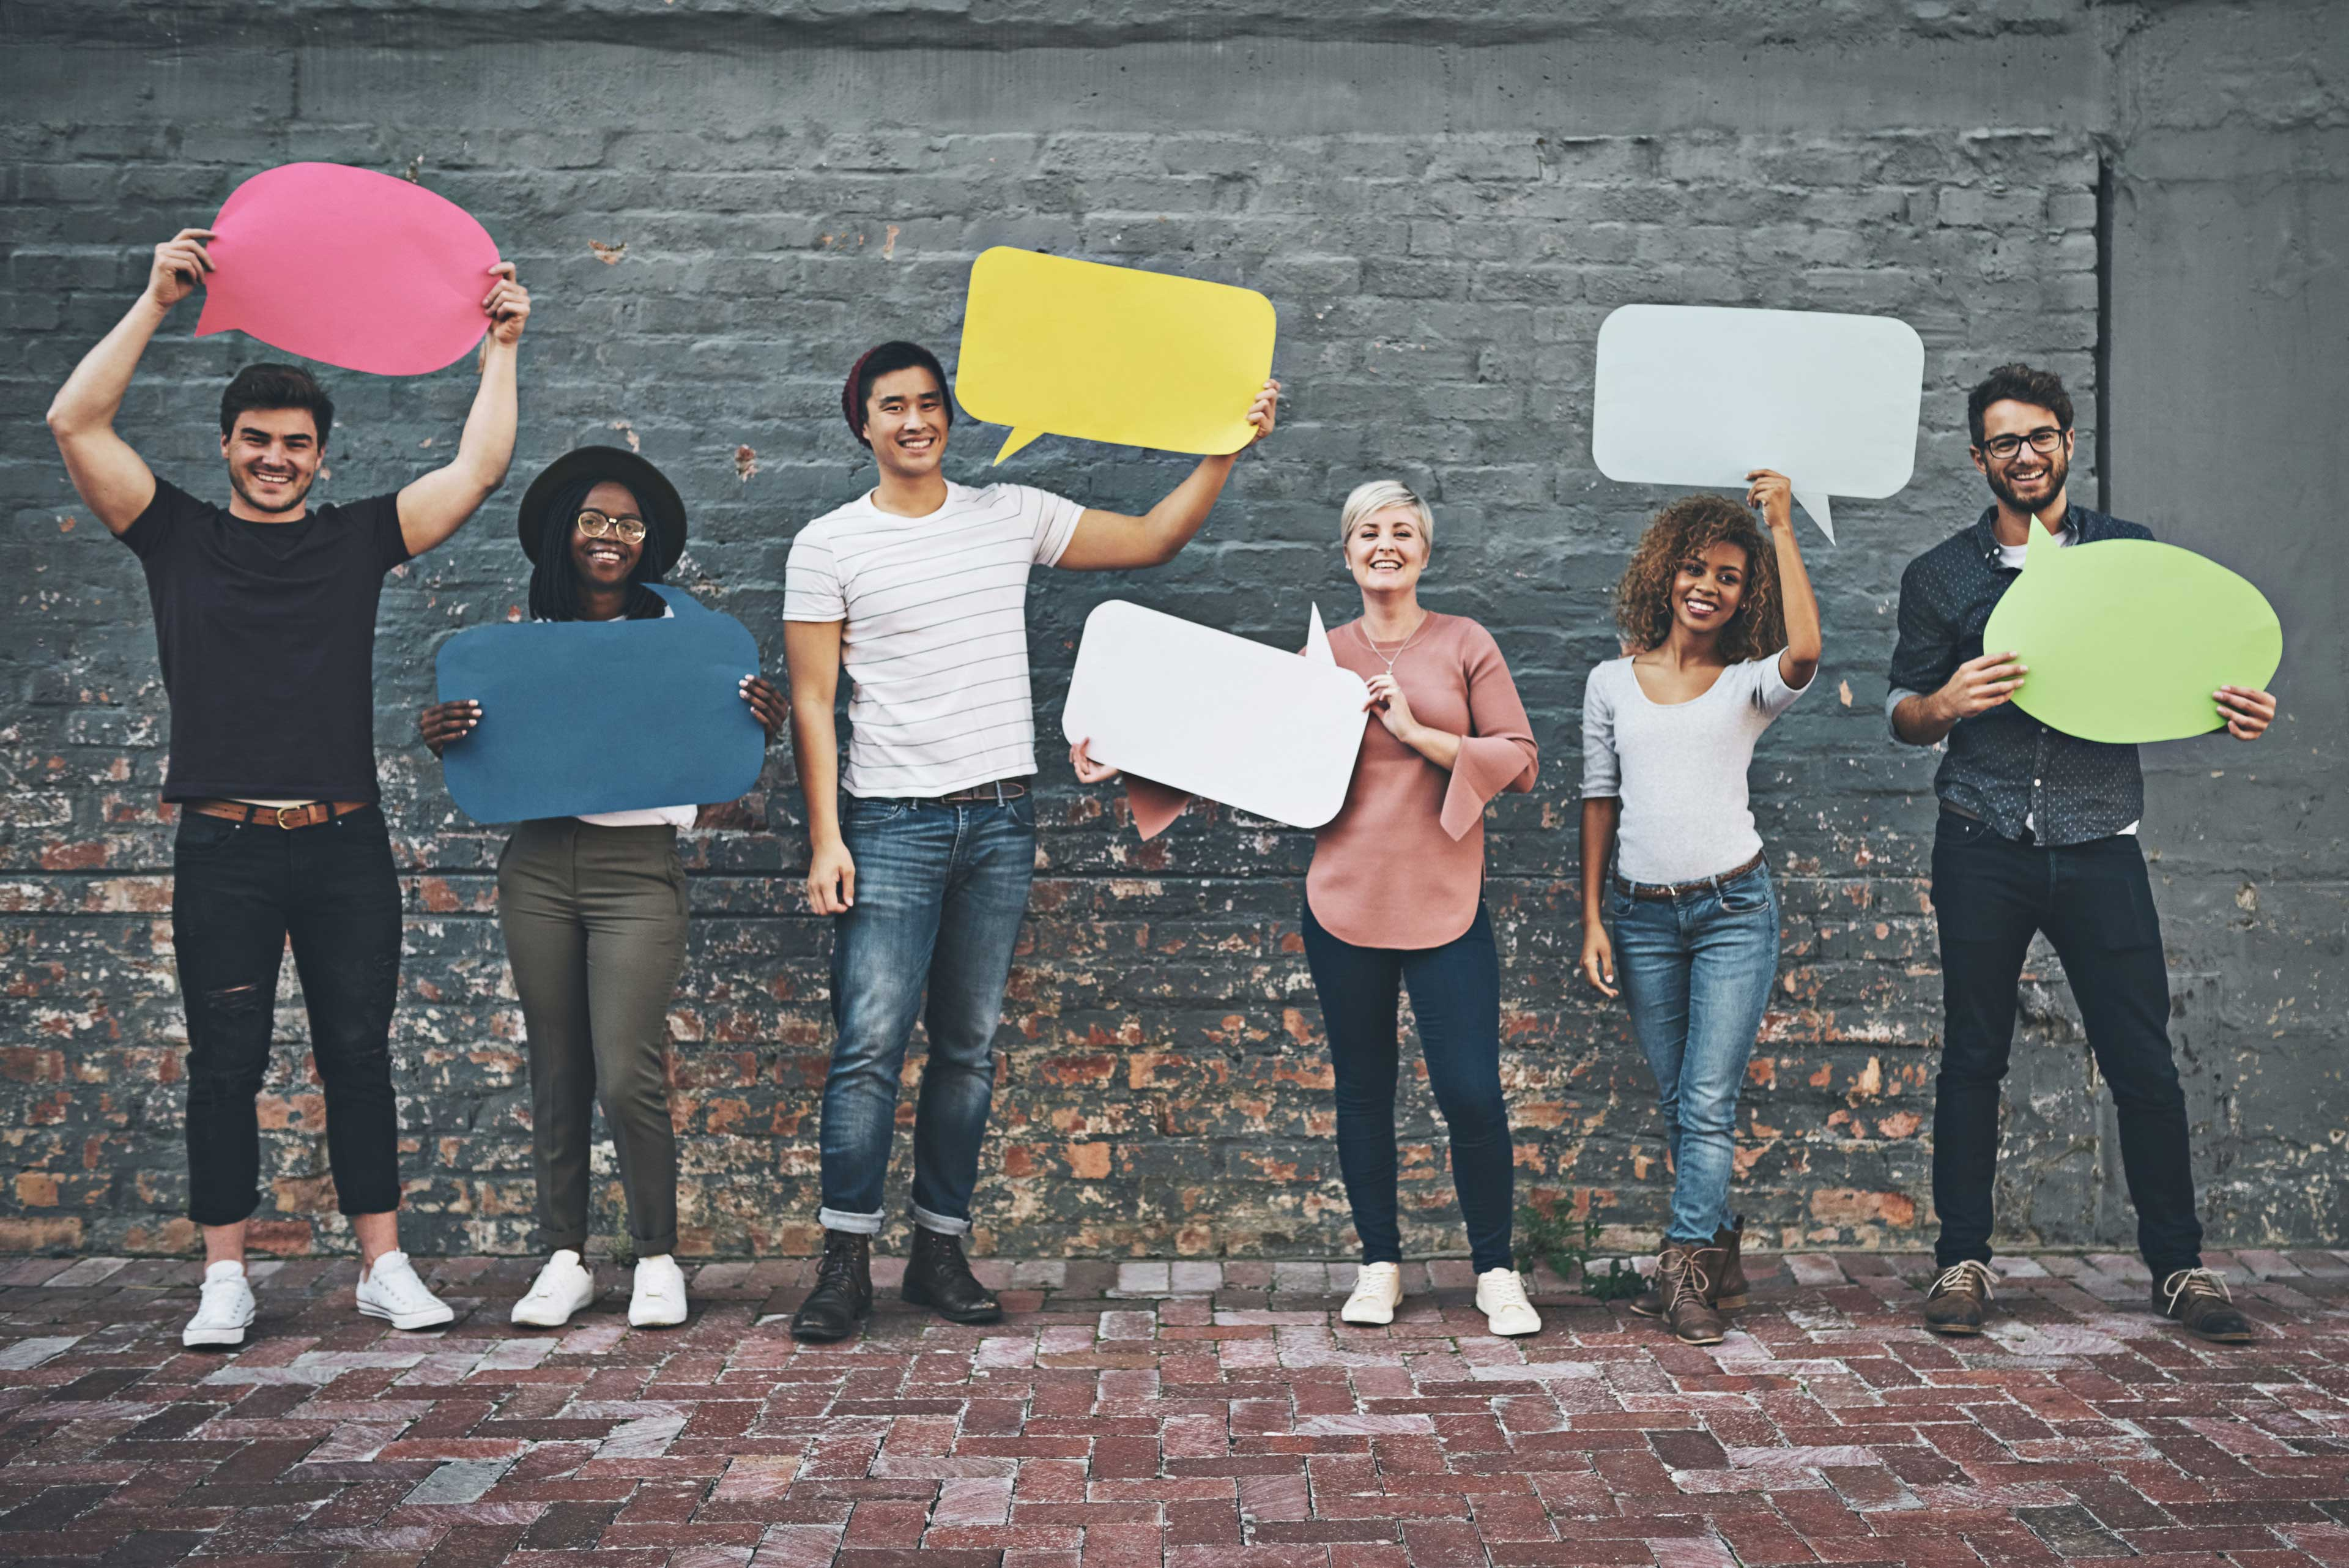 Diverse group of people holding up speech bubbles image